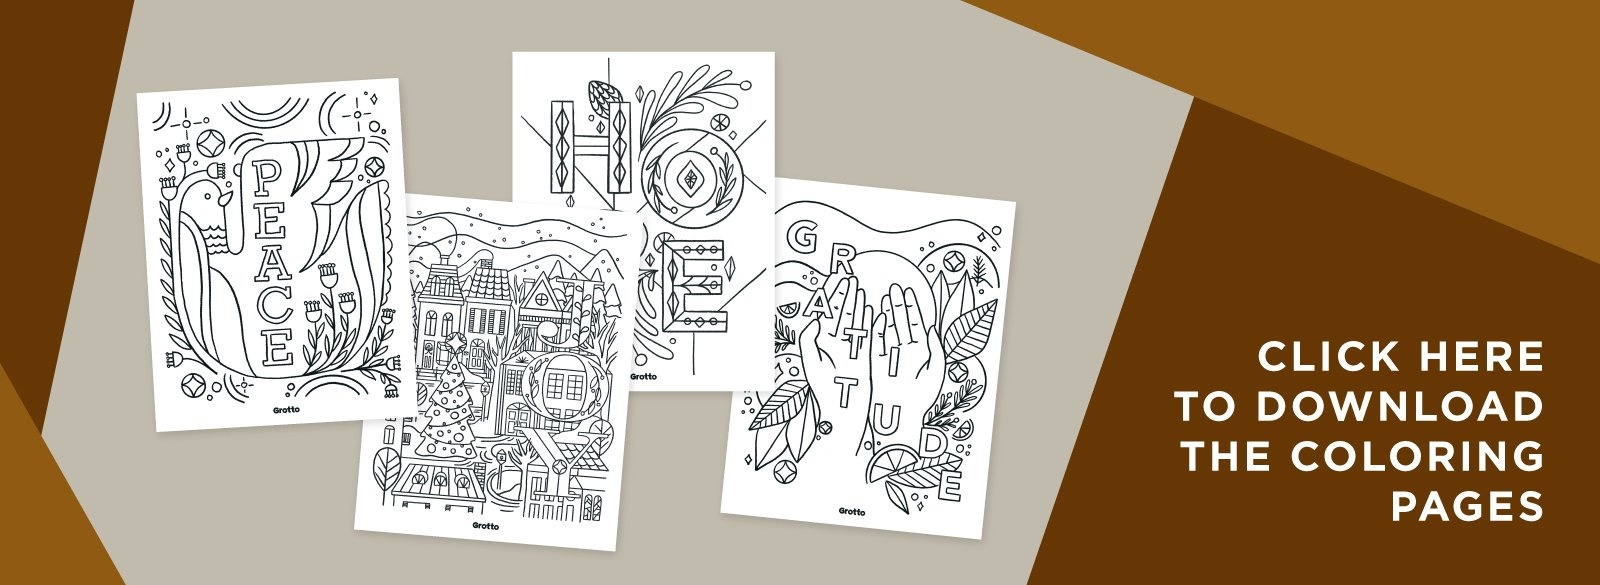 Click here to download the coloring pages.